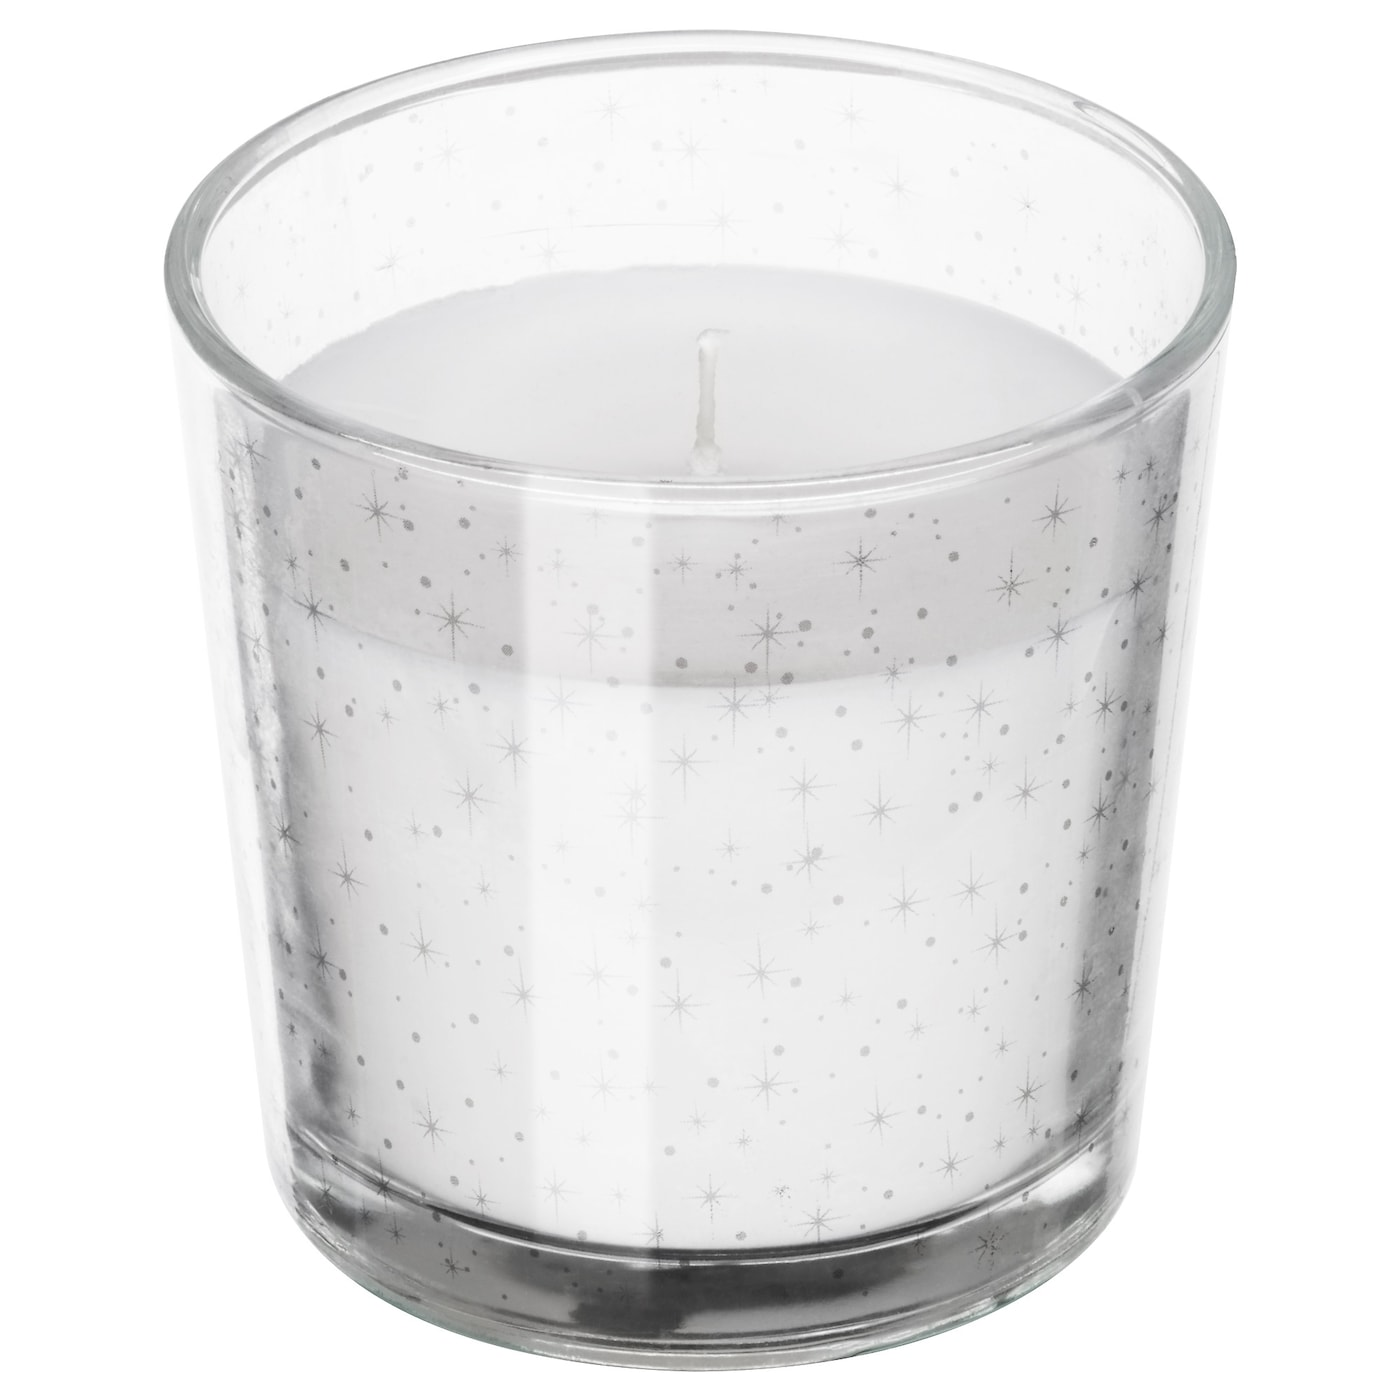 IKEA VINTER 2017 scented candle in glass An earthy and natural scent with hints of fire and smoke.